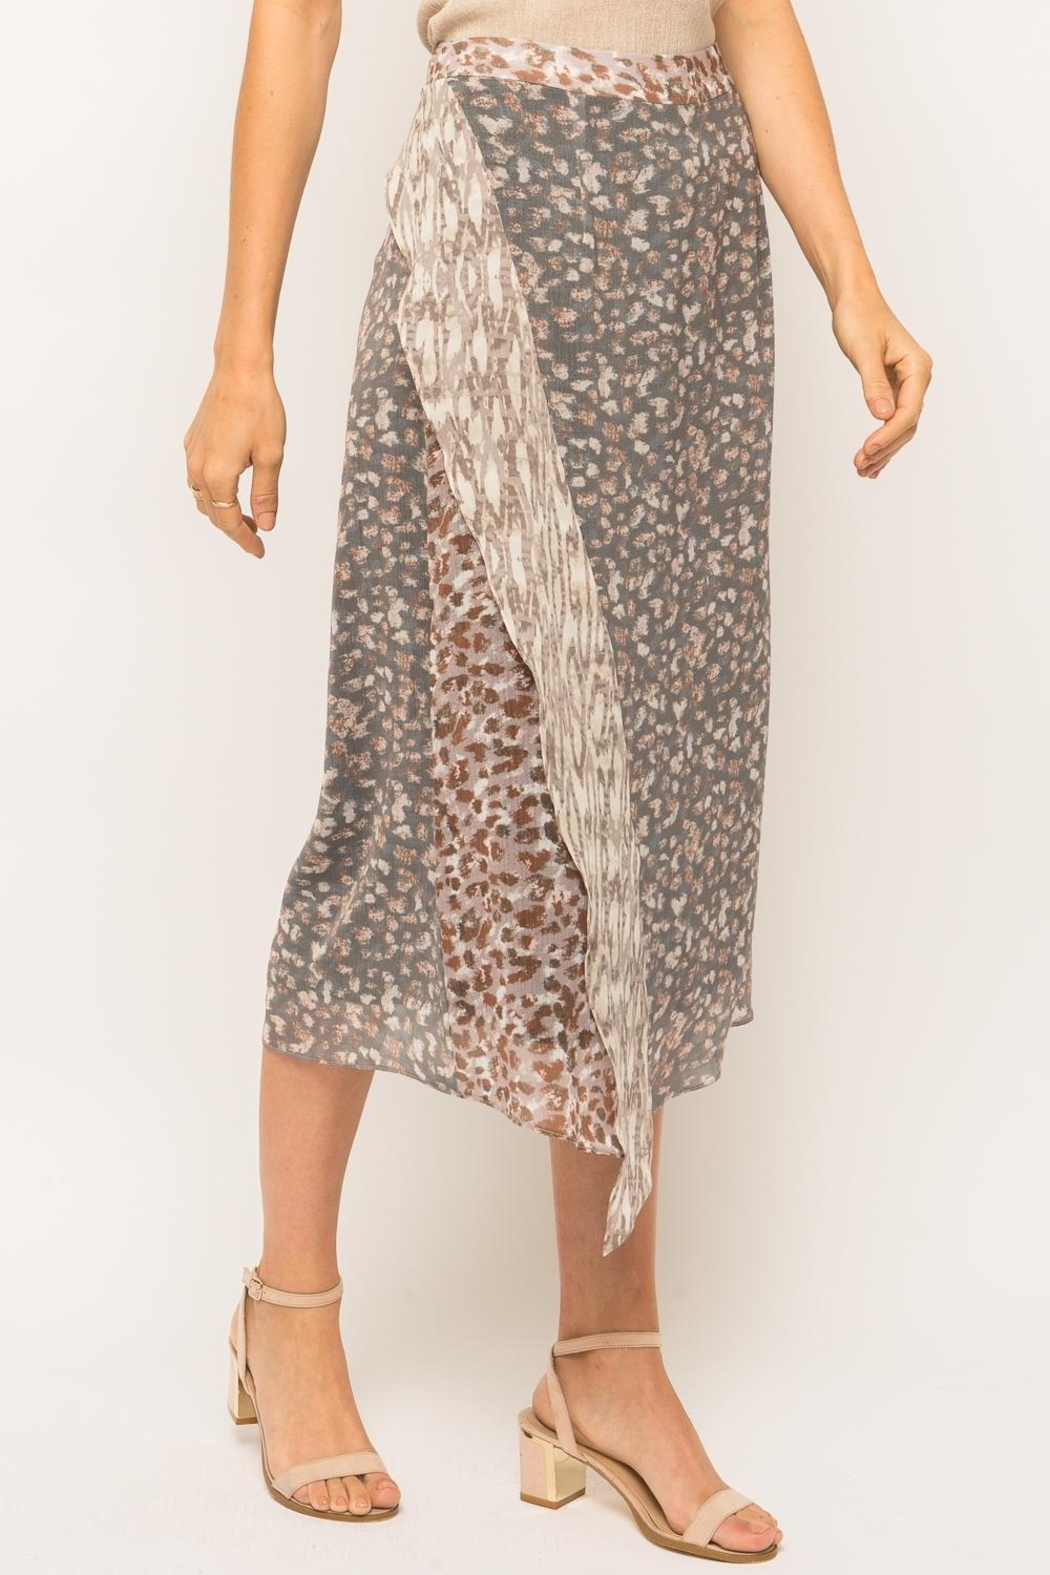 Mystree Cheetah Midi Skirt - Back Cropped Image